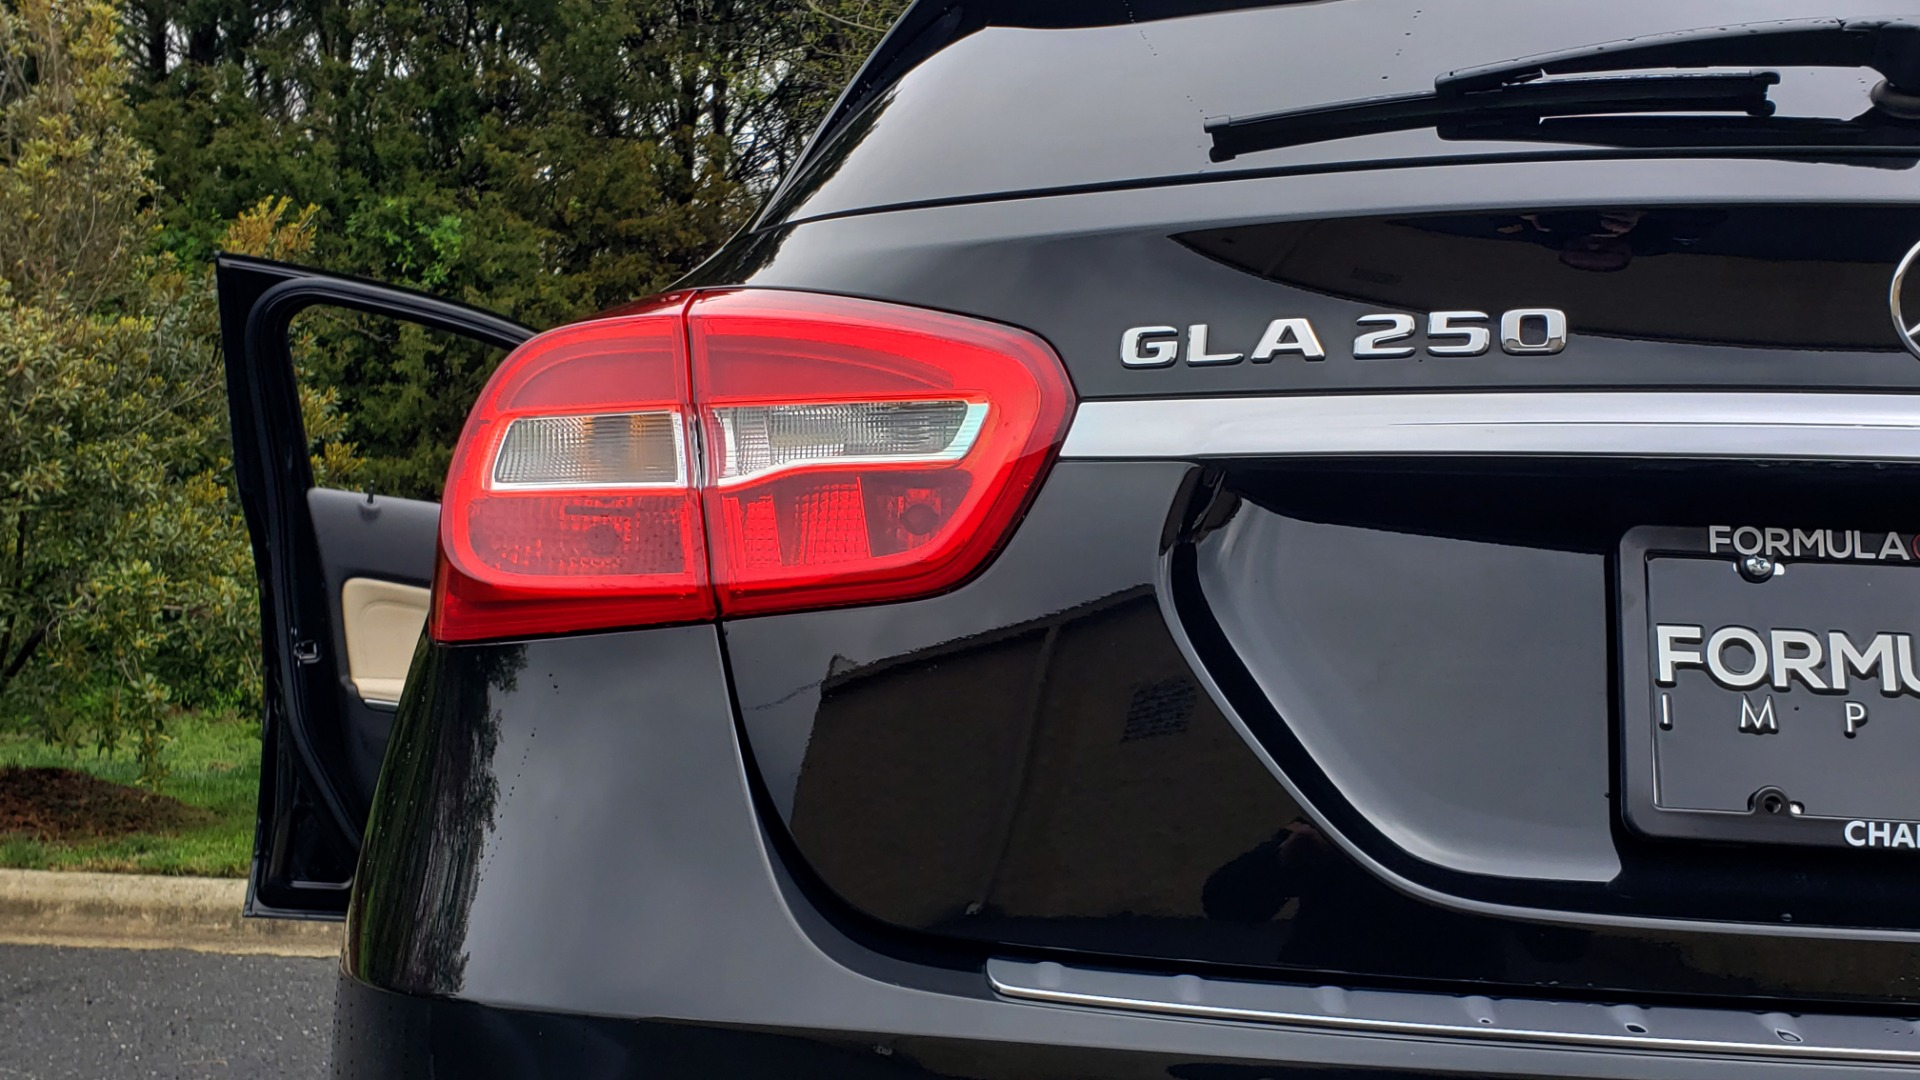 Used 2018 Mercedes-Benz GLA 250 4MATIC / PREMIUM / CONV PKG / NAV / PANO-ROOF for sale Sold at Formula Imports in Charlotte NC 28227 29